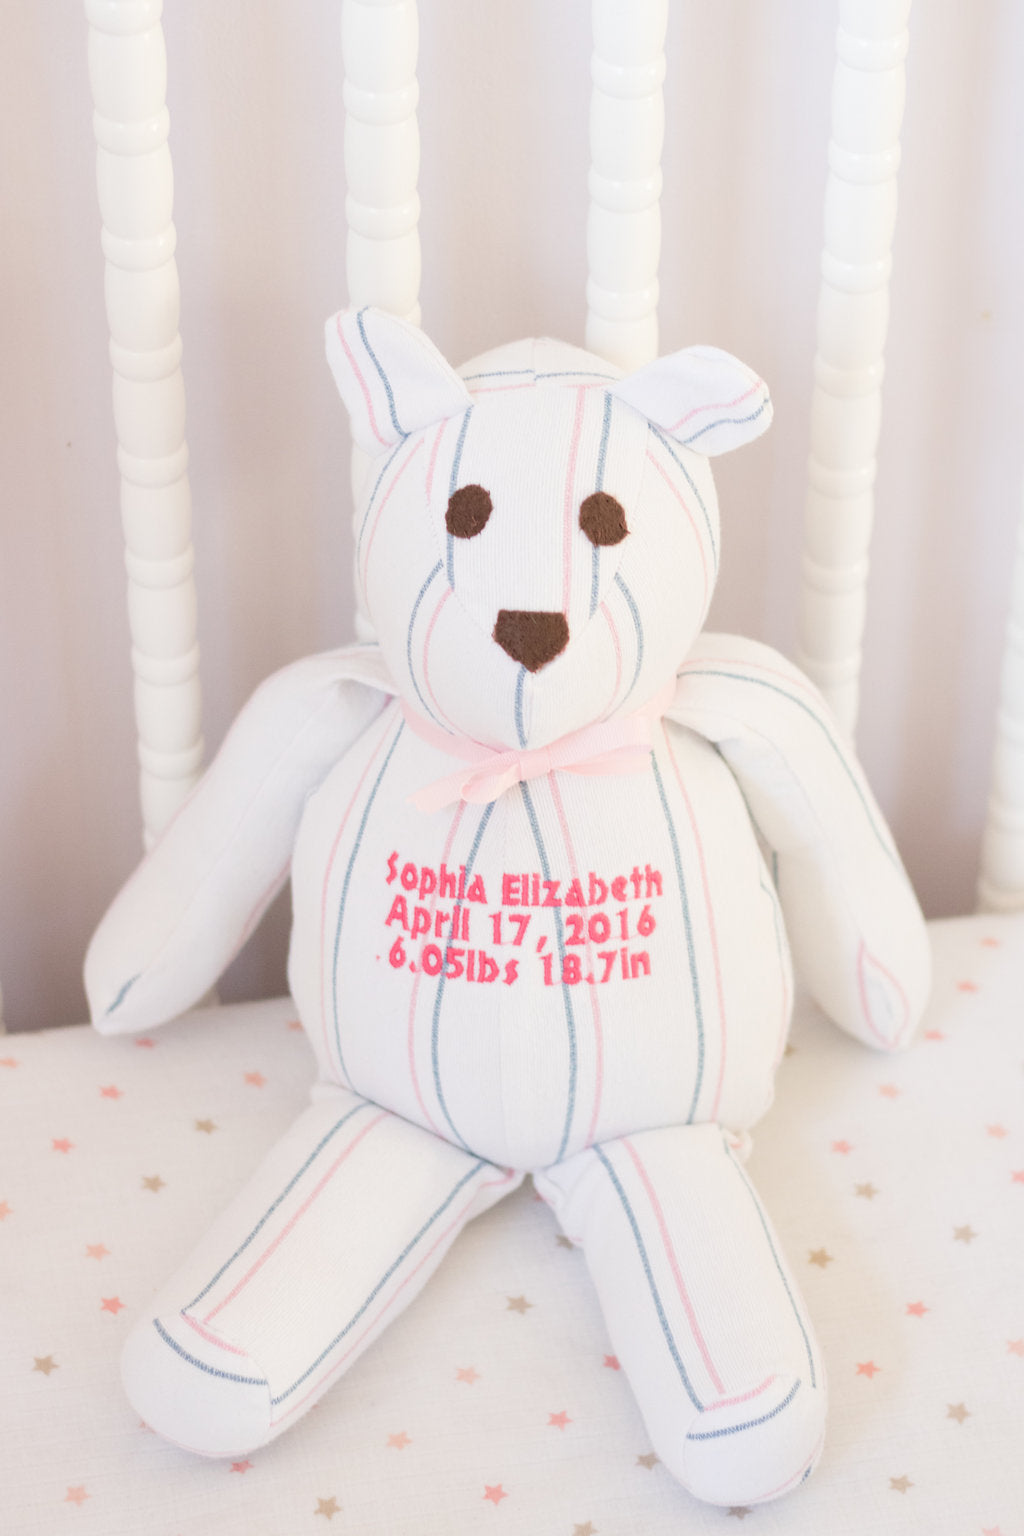 2a6bda87ea4 Keepsake Baby Gifts - Stuffed Bear - Baby Gift Items-Stitches by  Natalie-Stitches